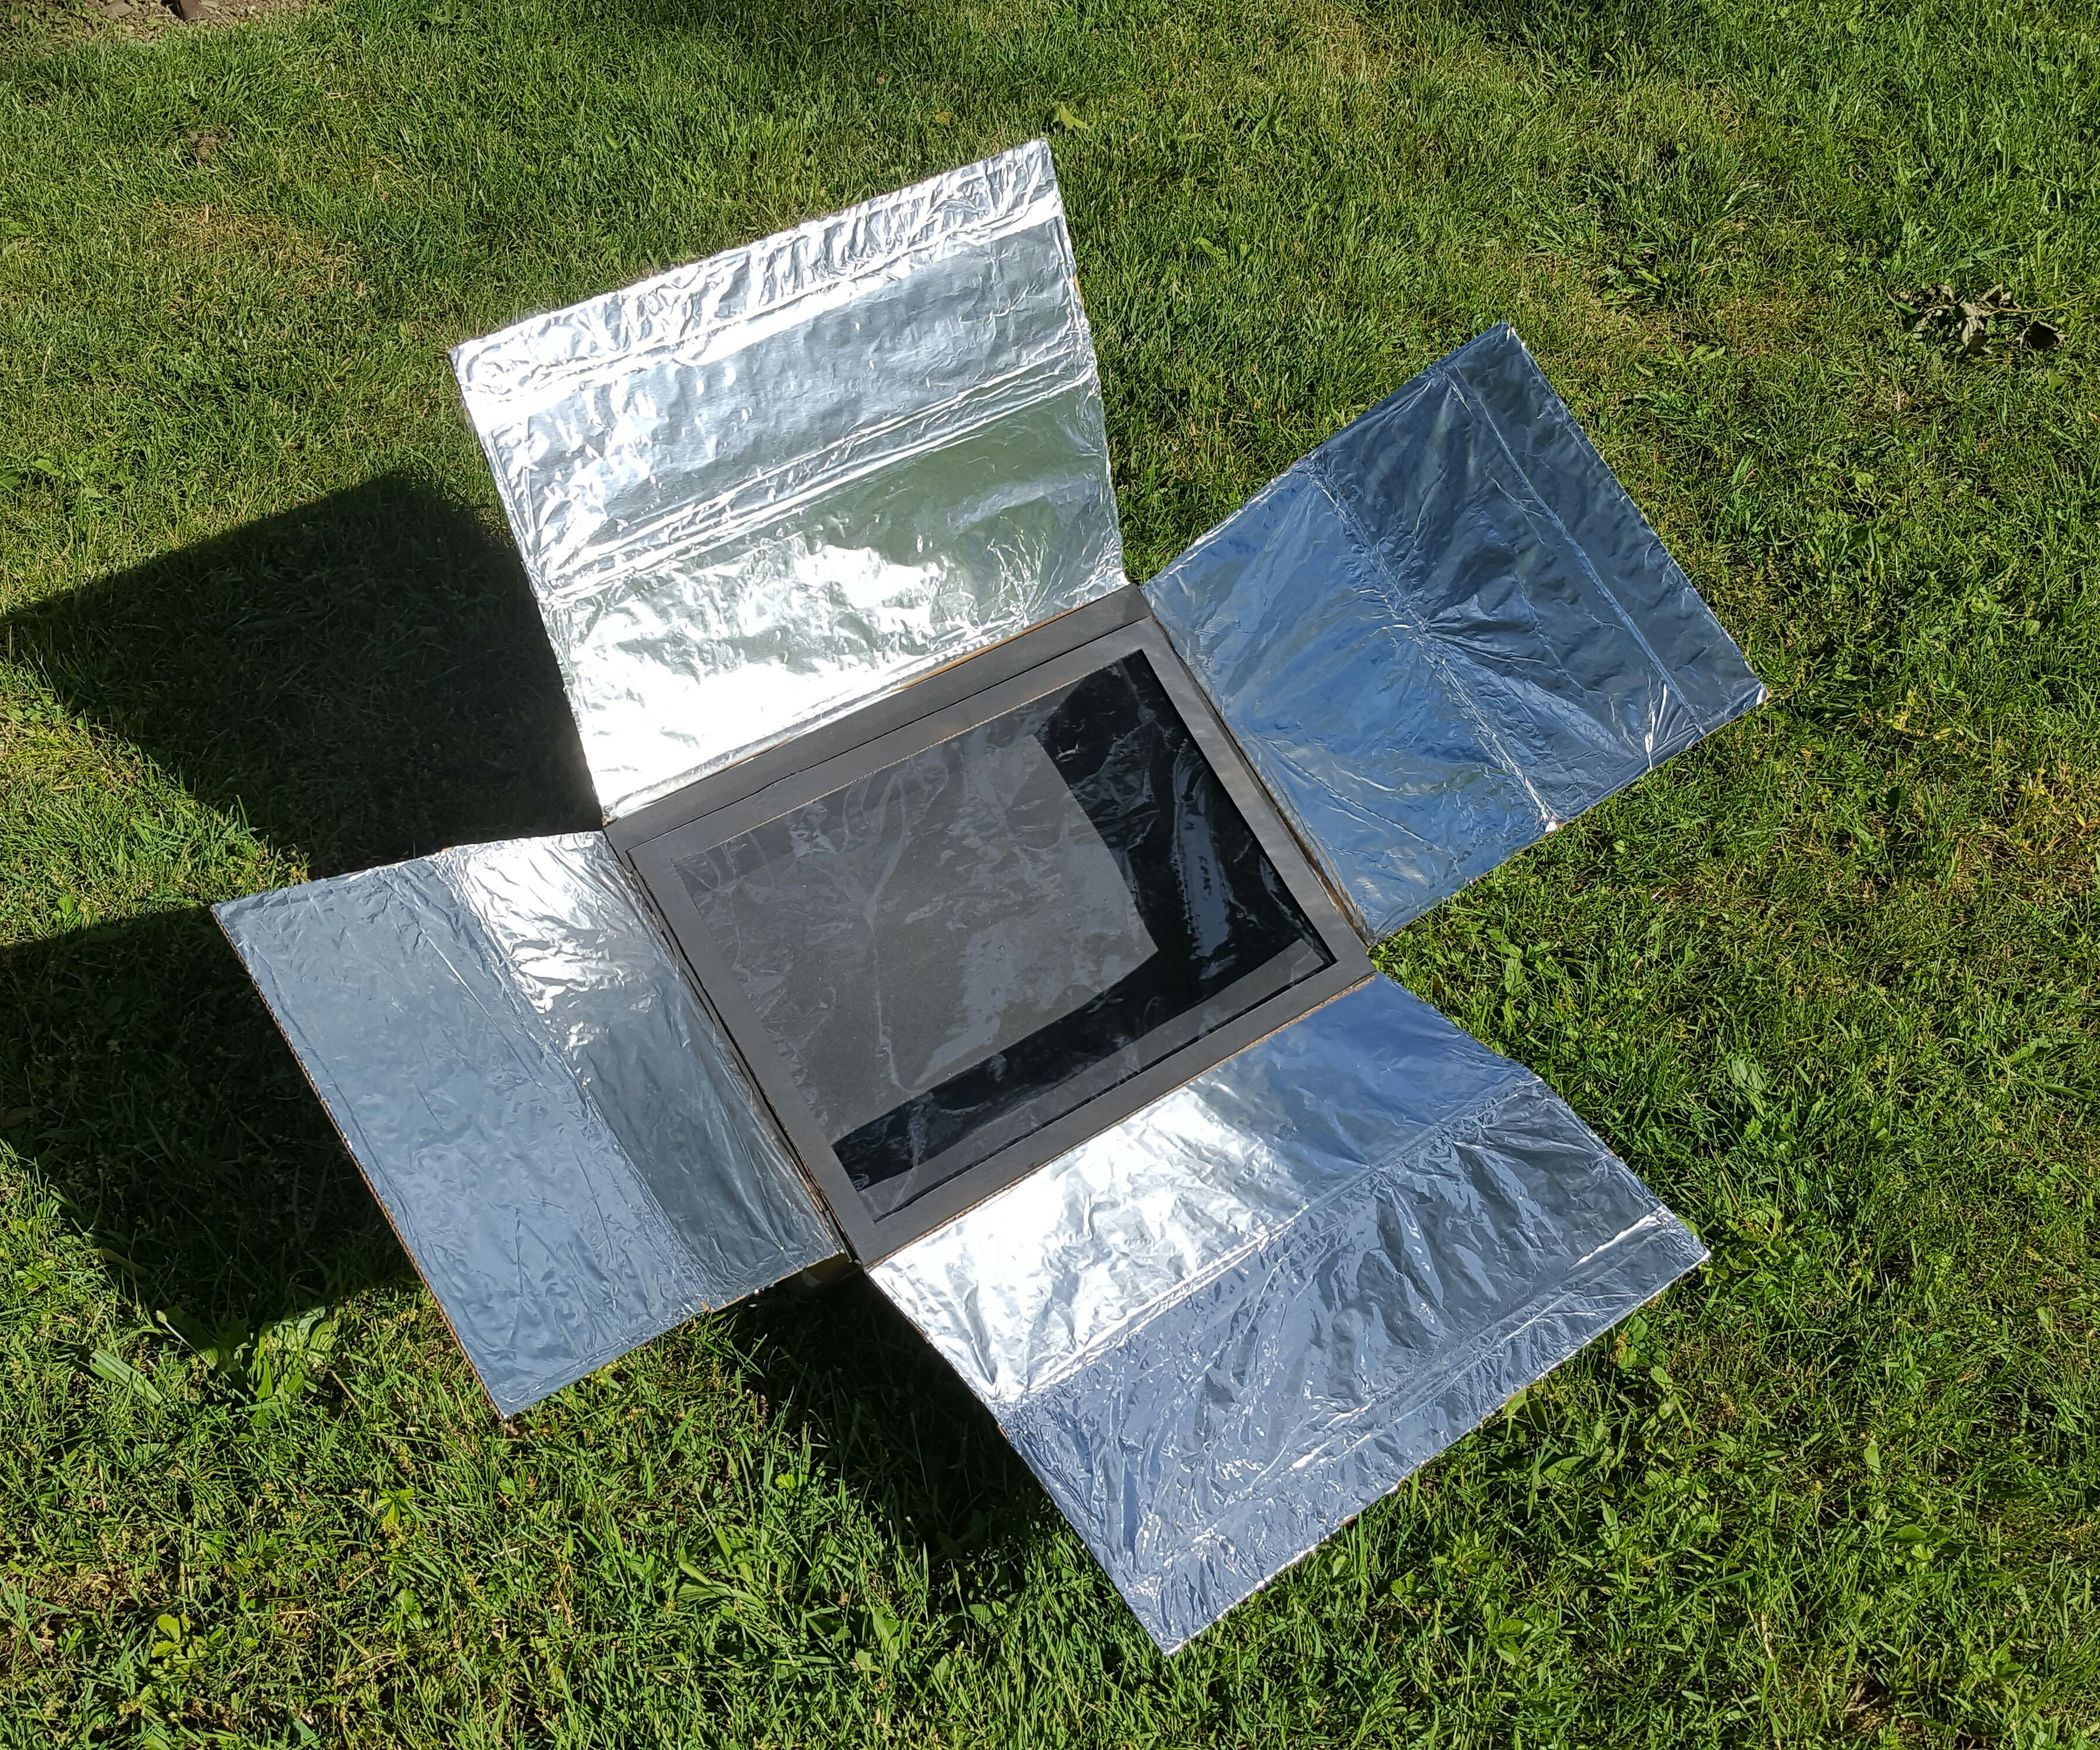 In this instructable I will show you how to create a DIY solar oven which can get up to around 200°F. I was able to use all materials I had laying around, so for me there was no additional cost, but you may need to buy a small piece of glass or acrylic. The entire base of this project was basically saved from the garbage, and I used all materials I had around, and even used many extra pieces from other projects. It's lightweight, compact, and ergonomic design makes it great for bringing ...